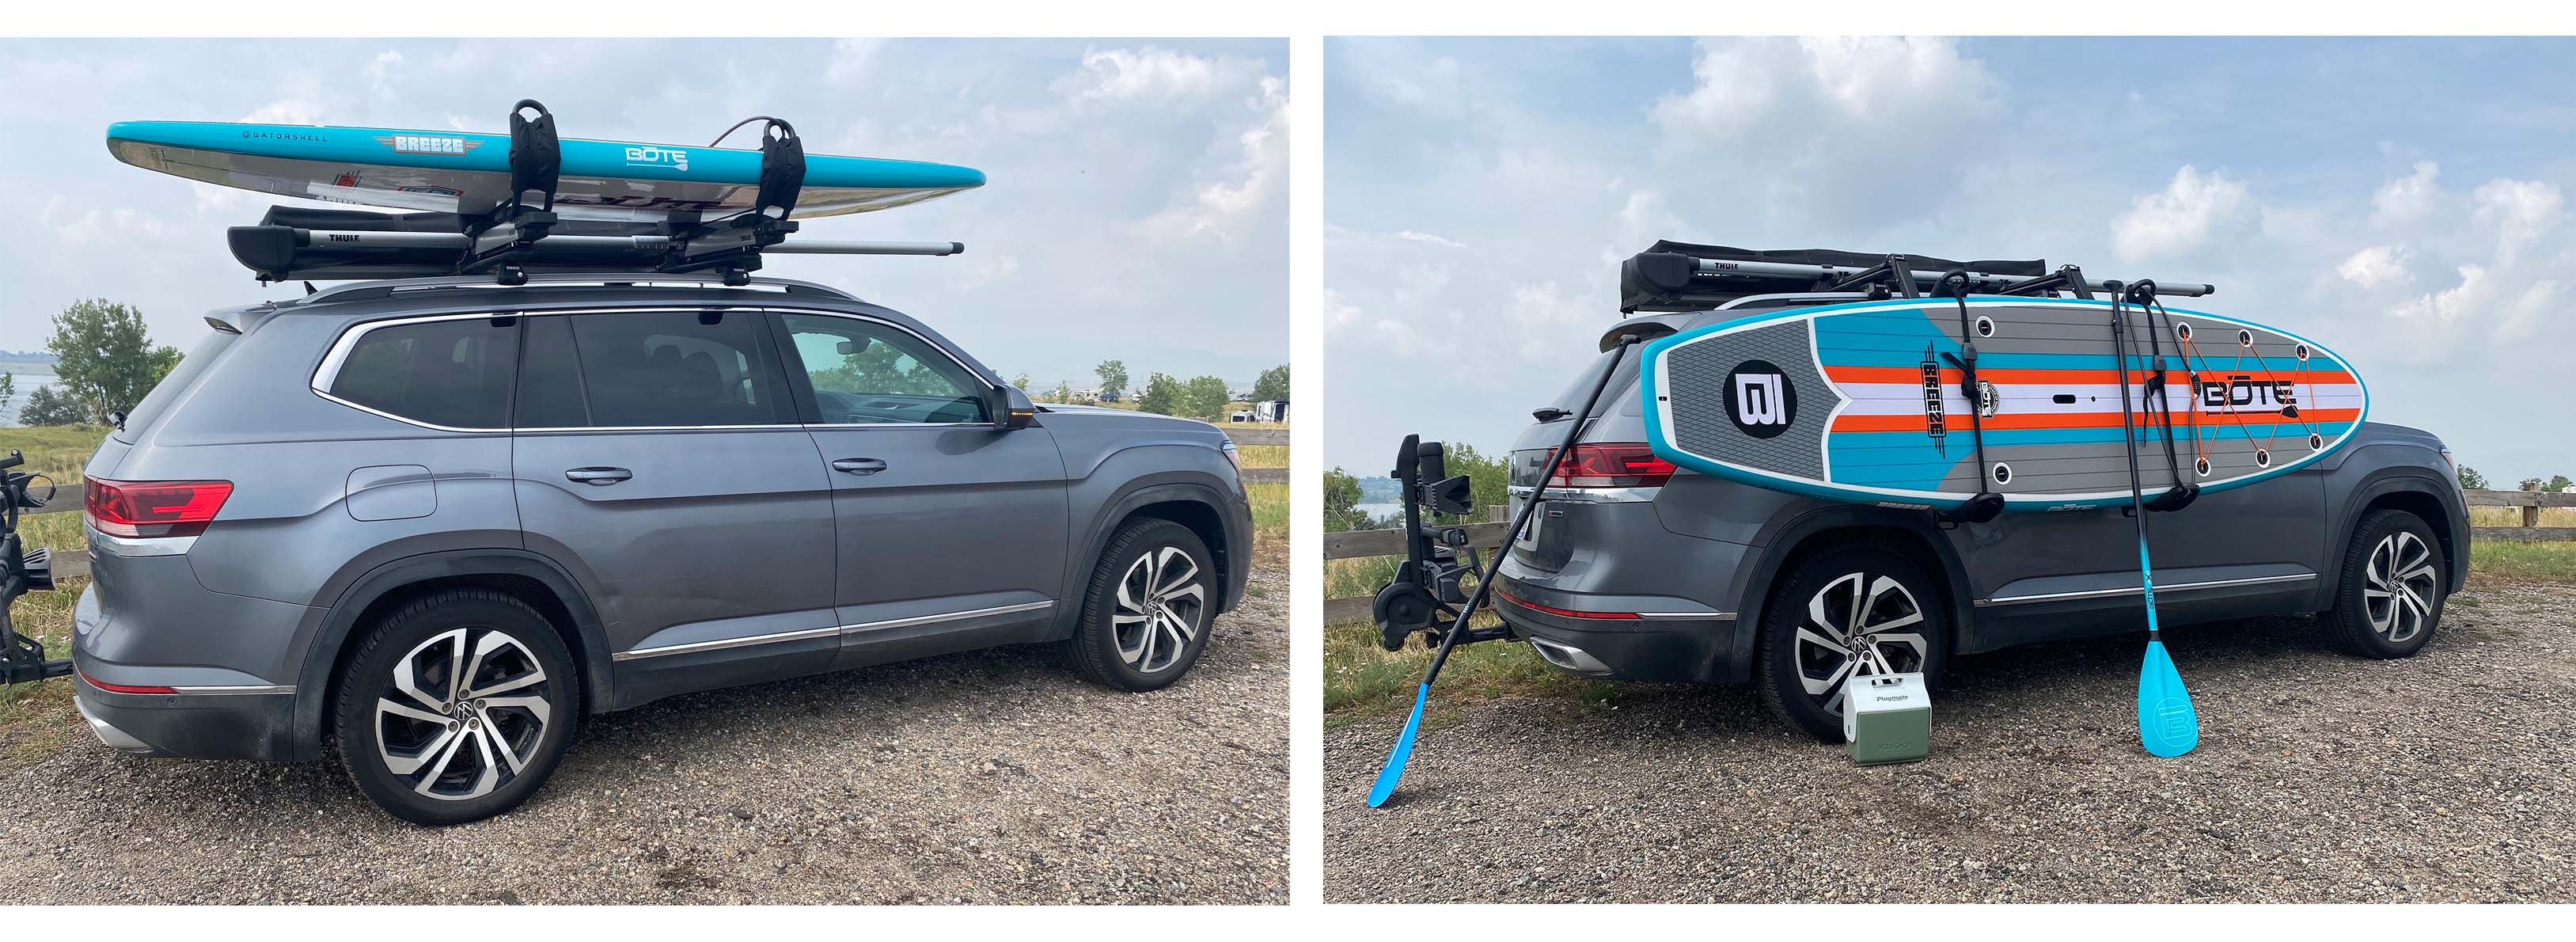 the thule hullavator rack, before and after